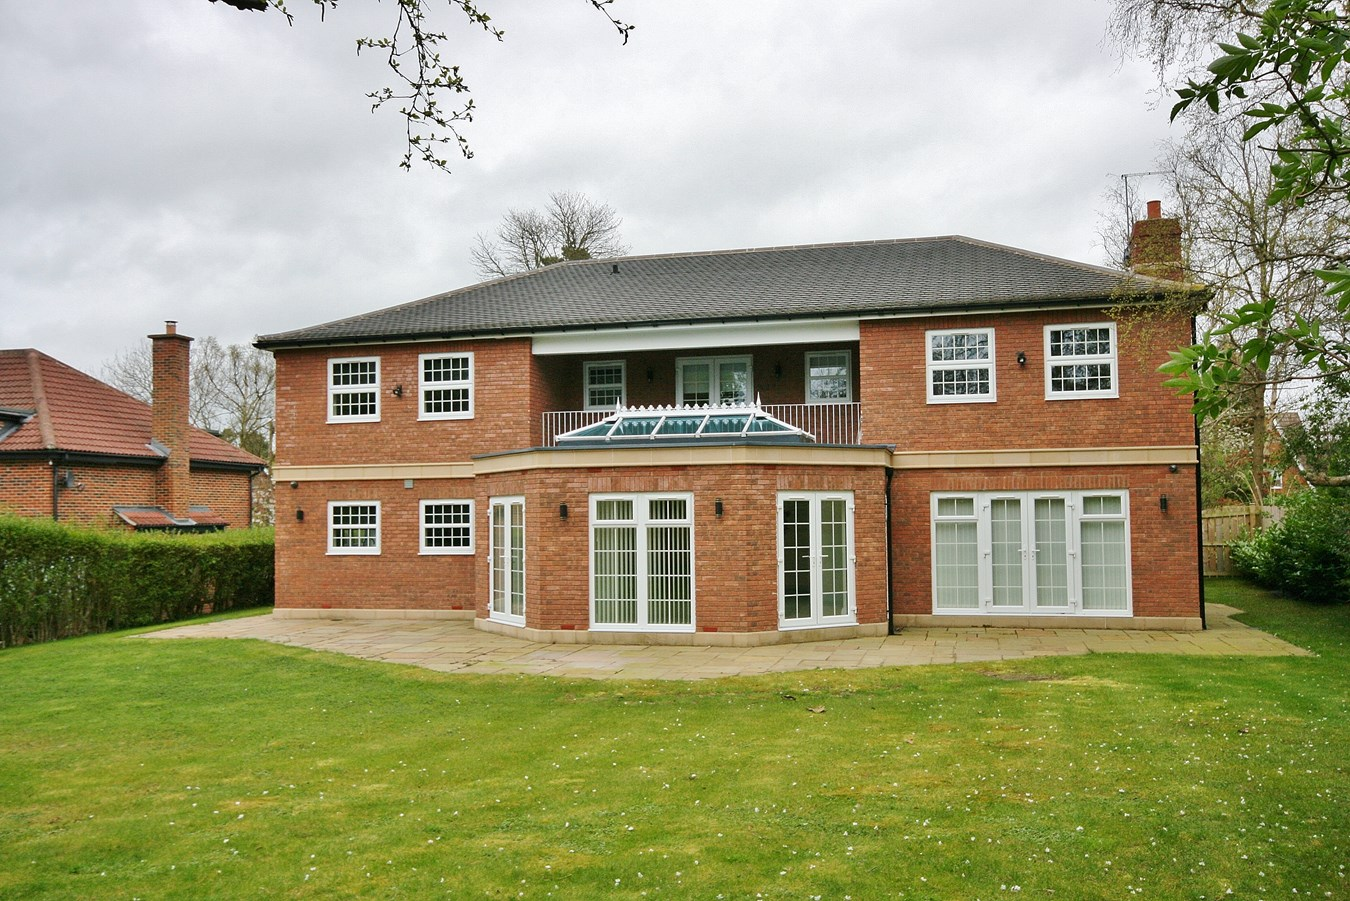 Property For Sale In Ne Newcastle Upon Tyne